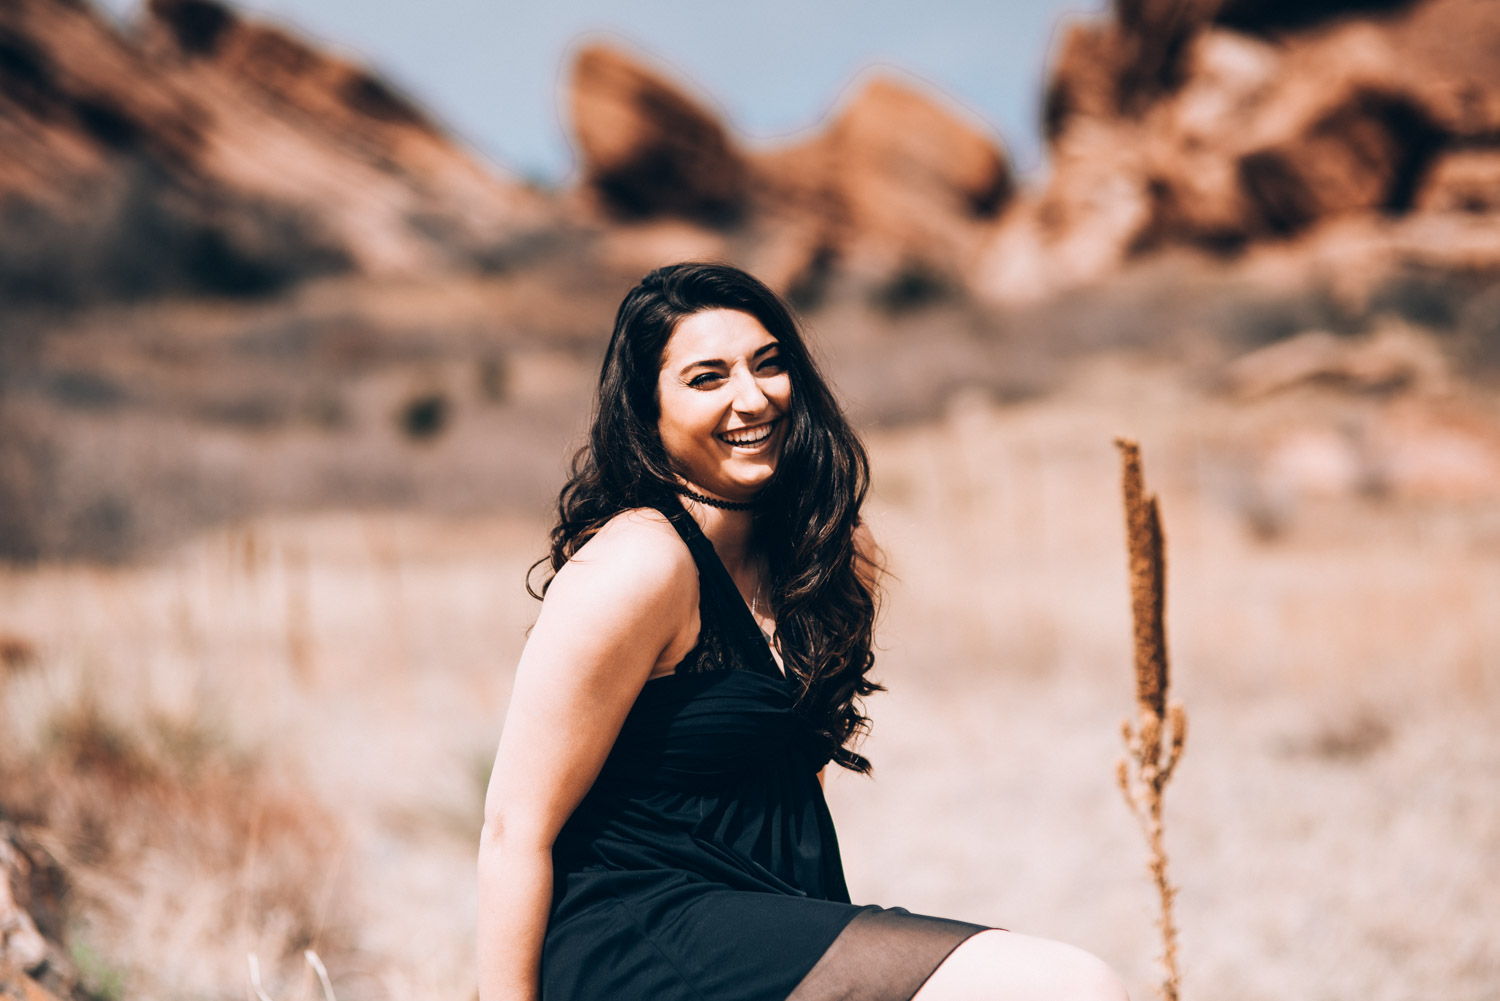 Red Rocks High School Senior Photos - Denver Colorado (13 of 24).jpg